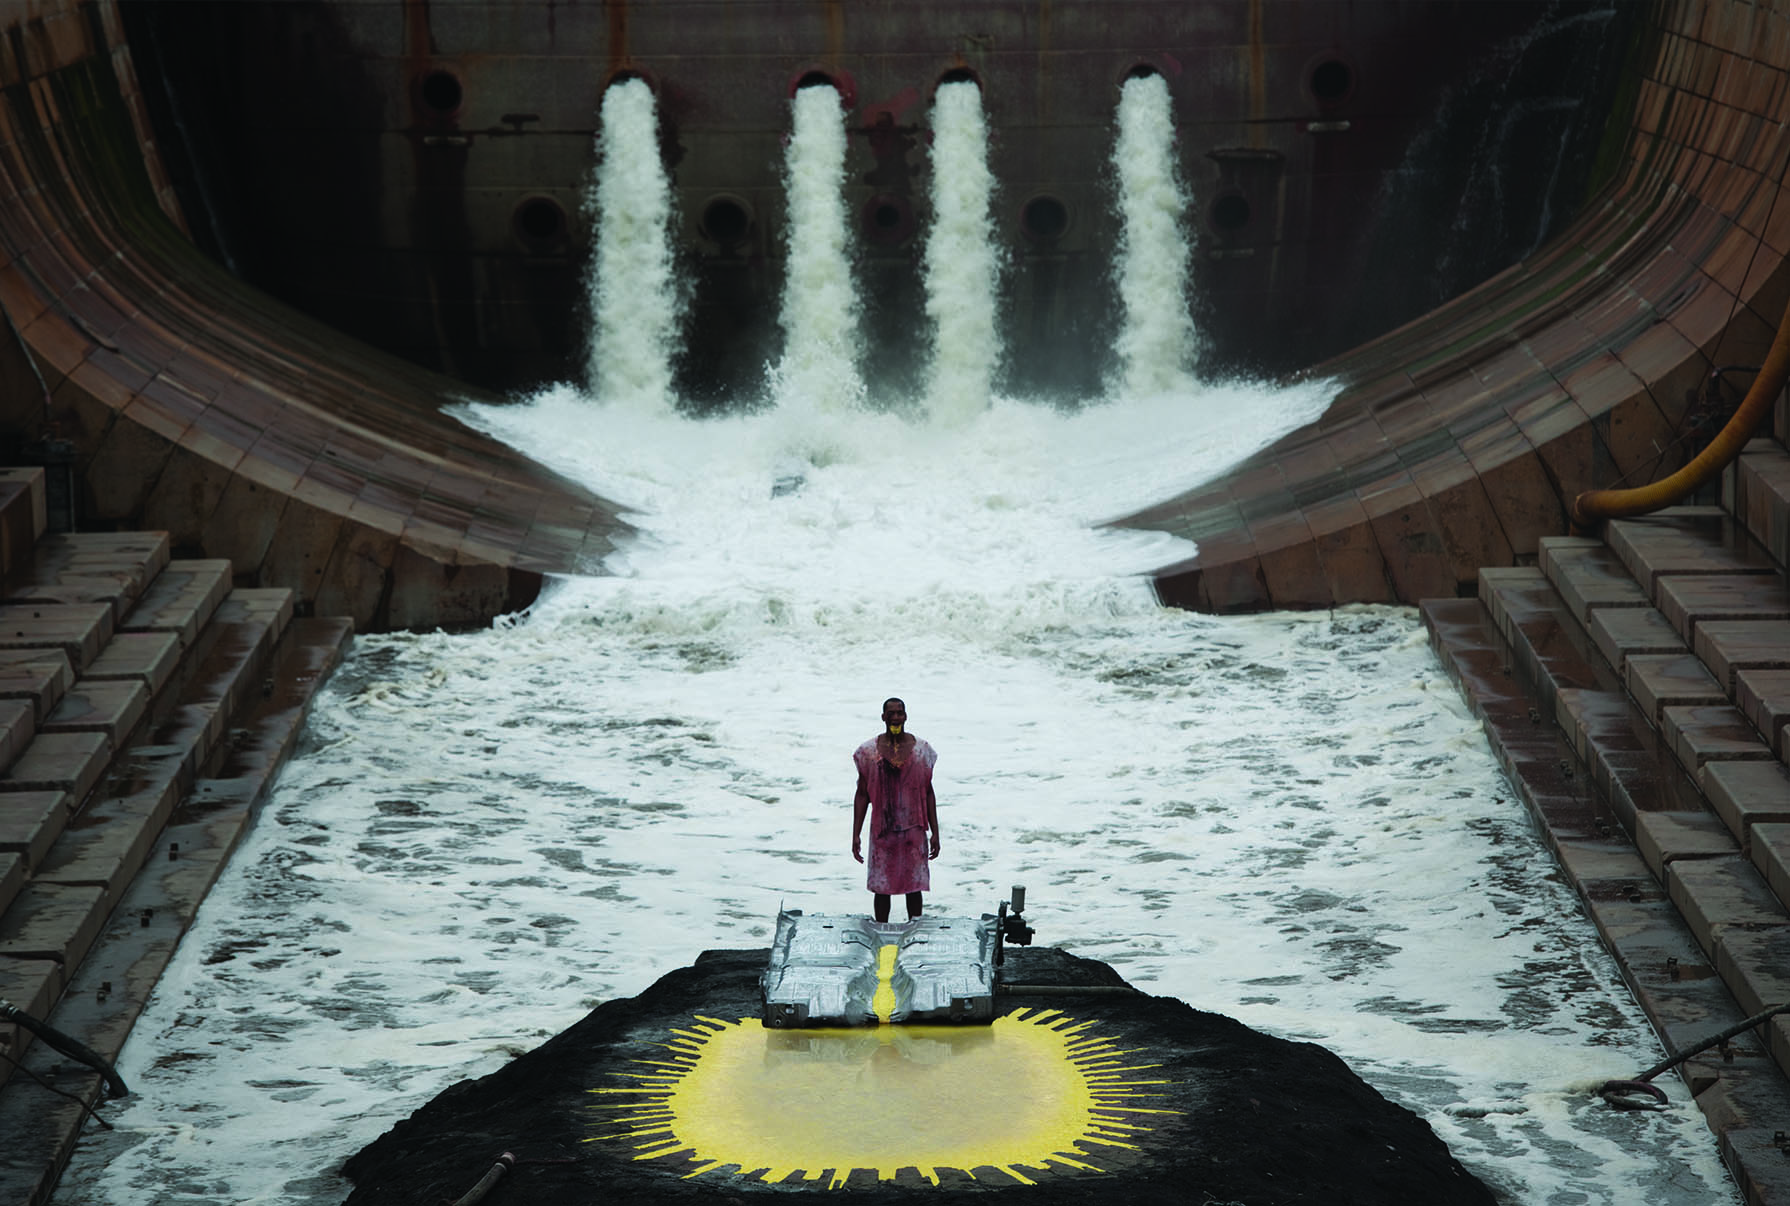 Matthew Barney and Jonathan Bepler Talk River of Fundament on Pitchfork.tv